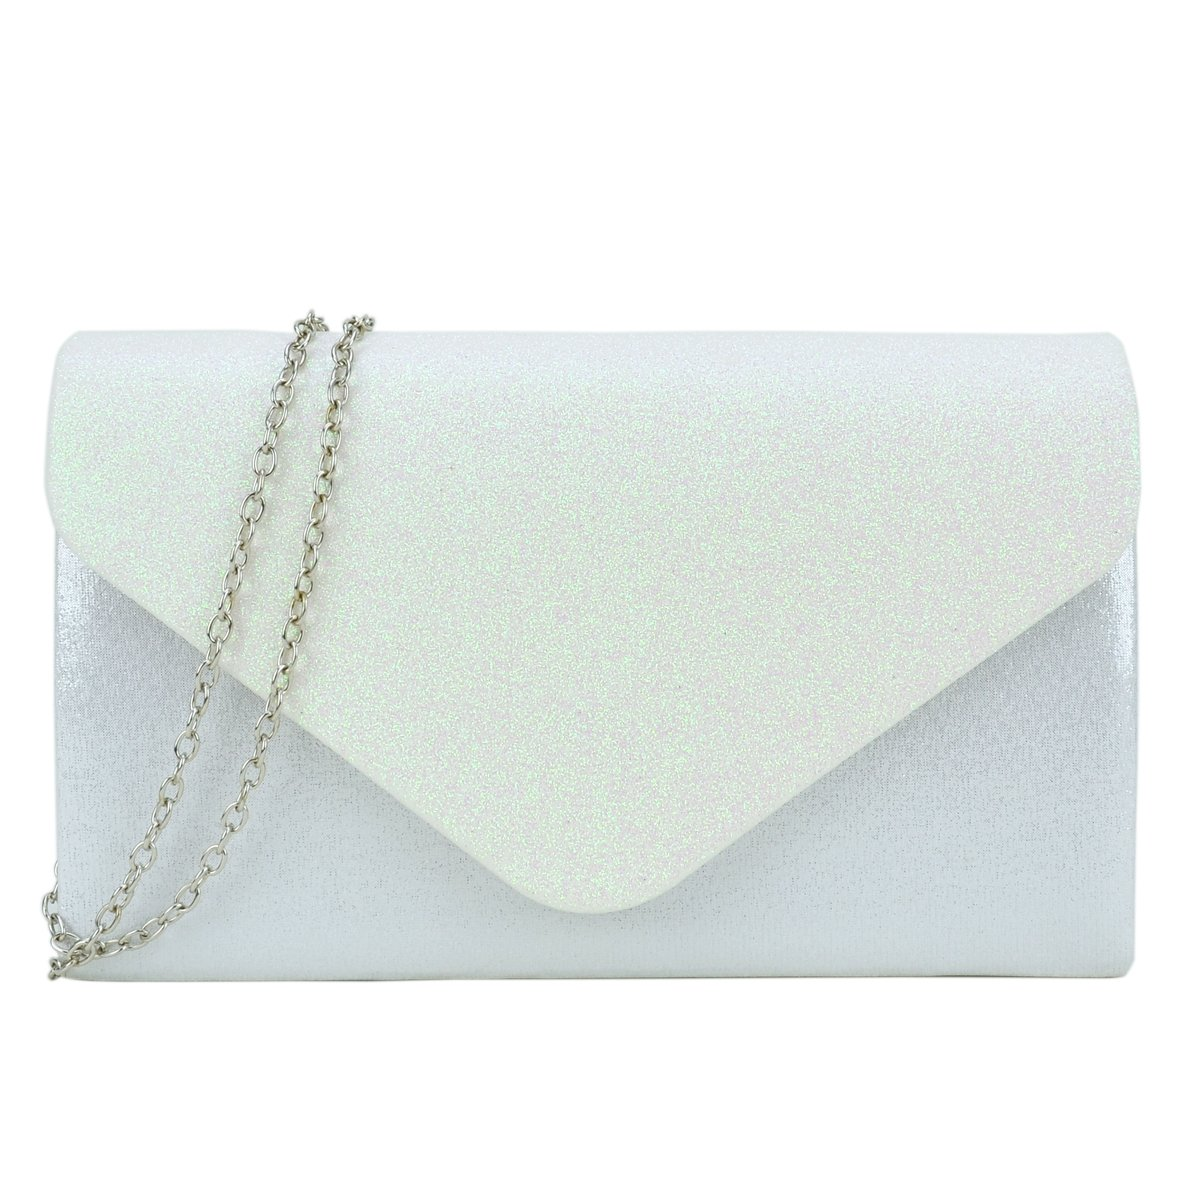 Dasein Women's Clutch Purses Evening Bags Envelope Frosted Handbag Party Prom Wedding Clutch (Ivory)